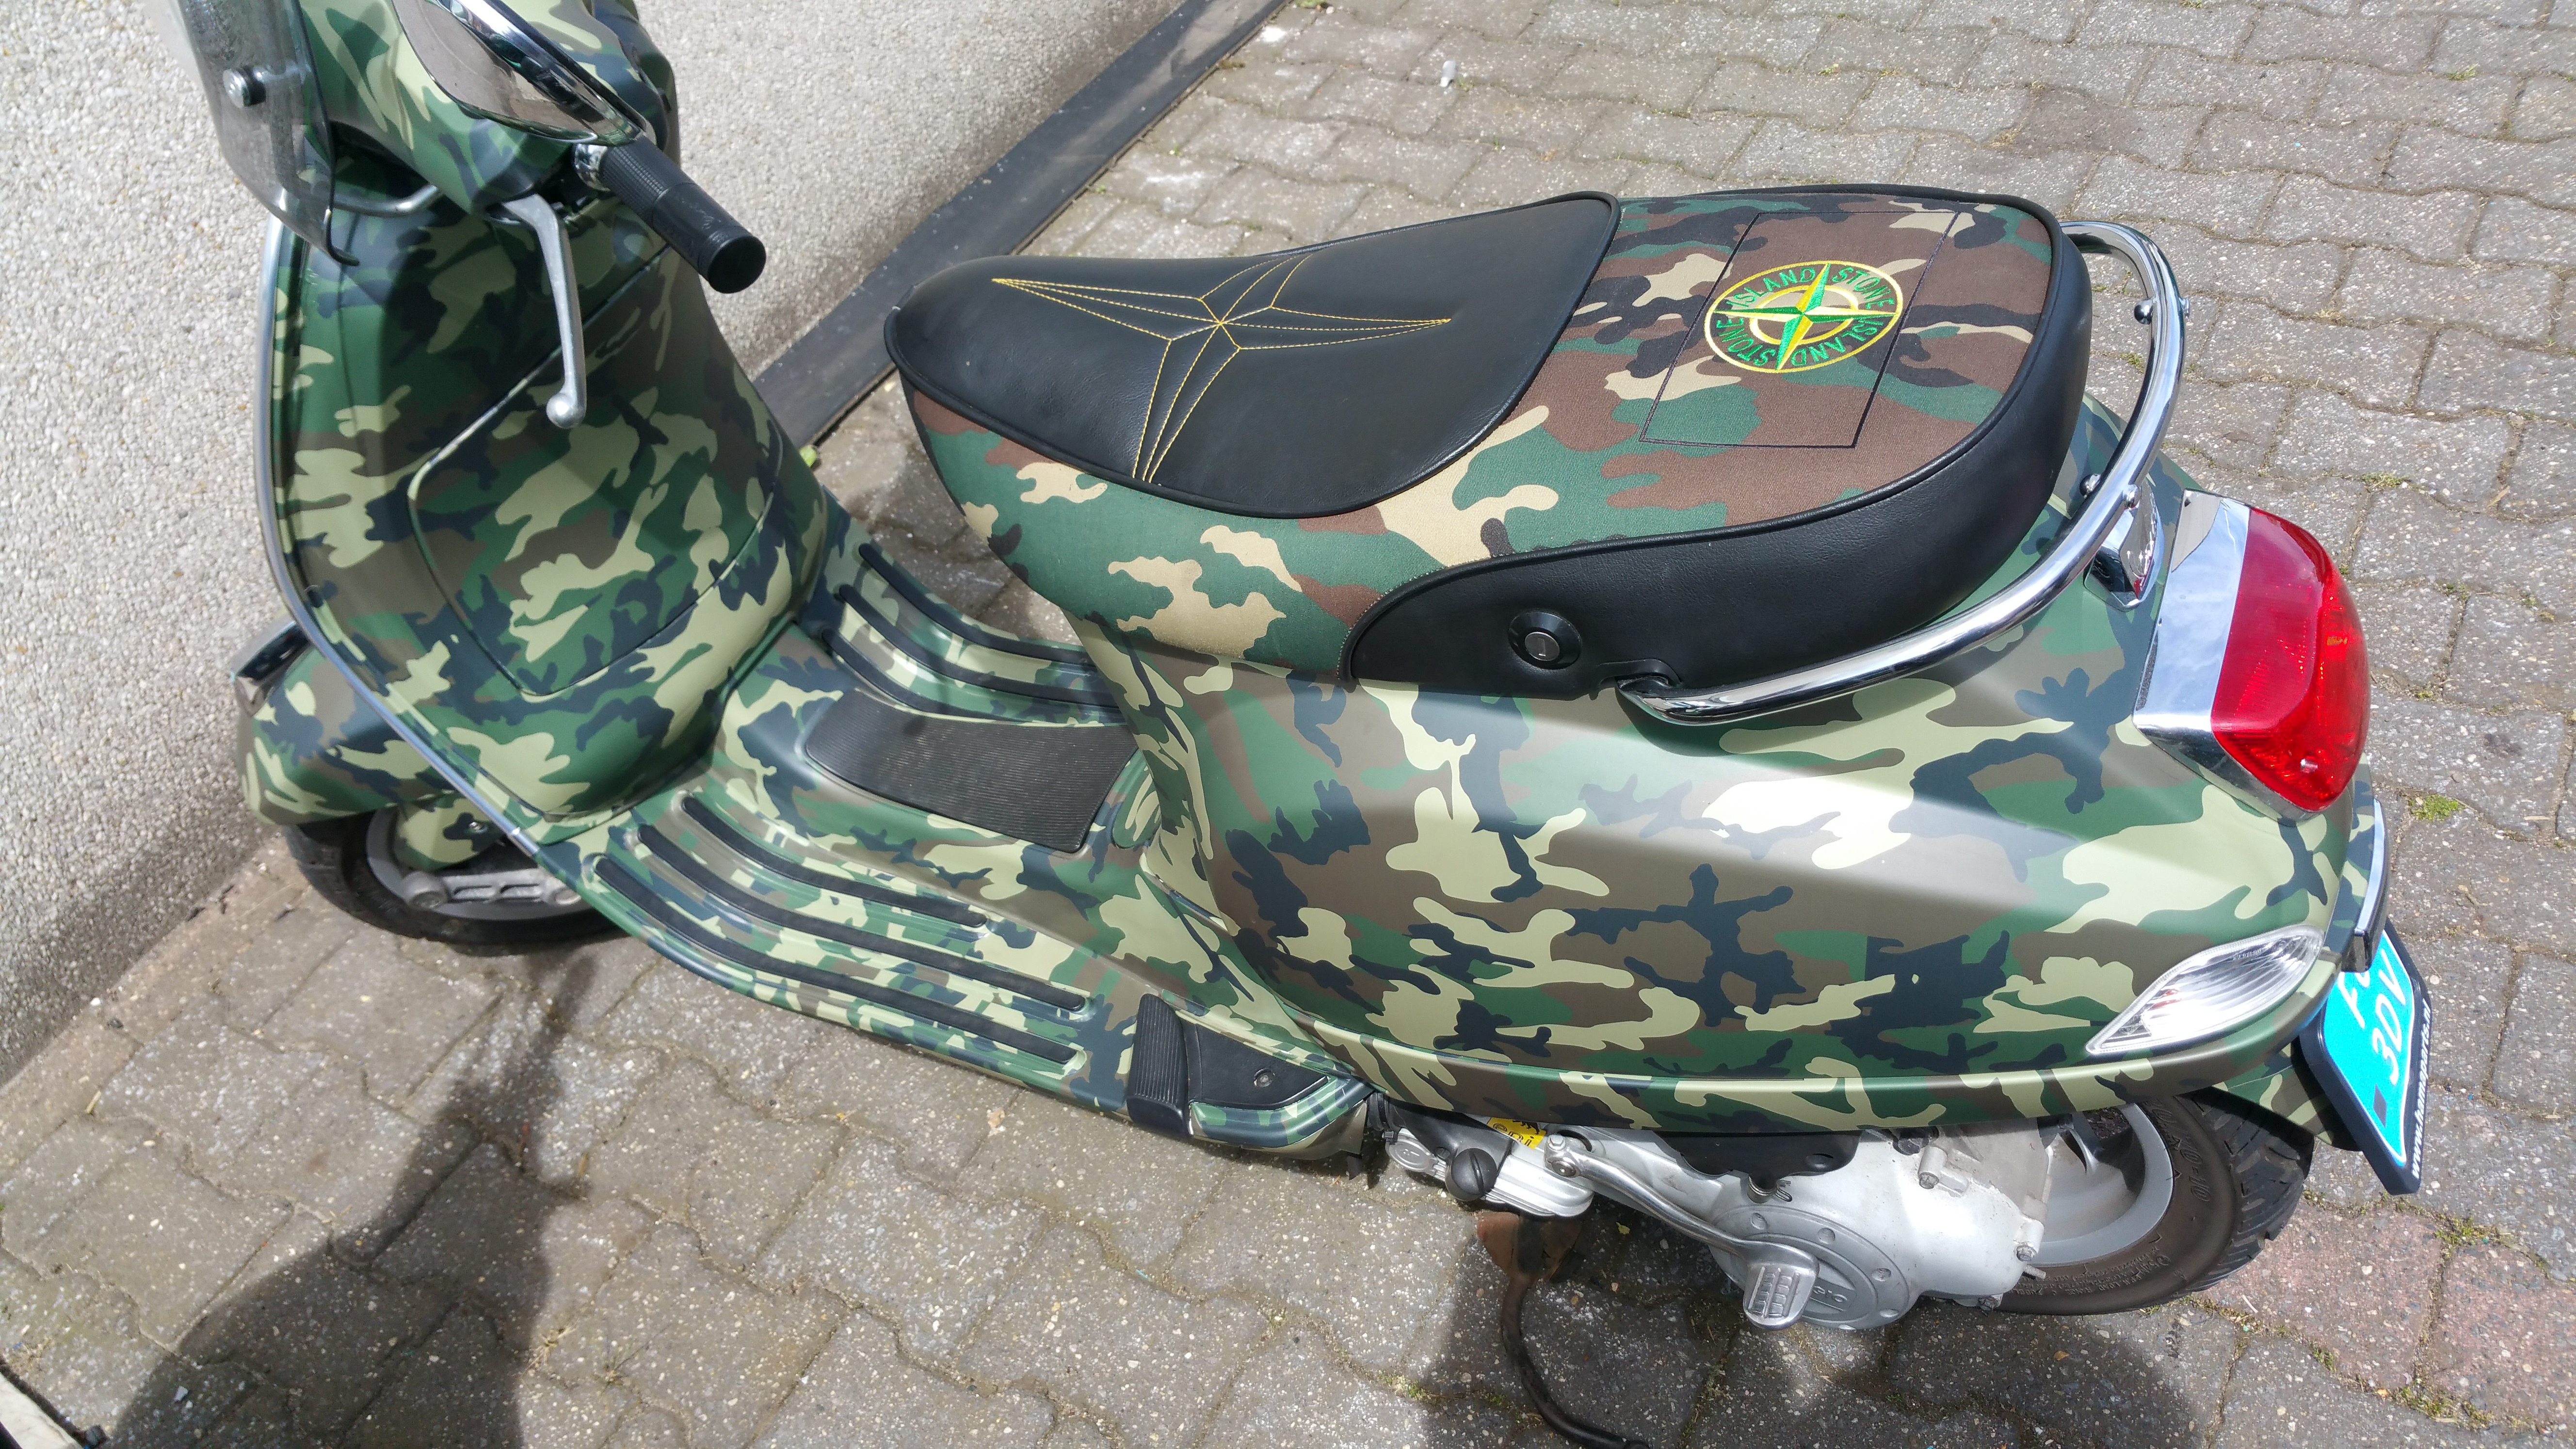 Wrapping scooter